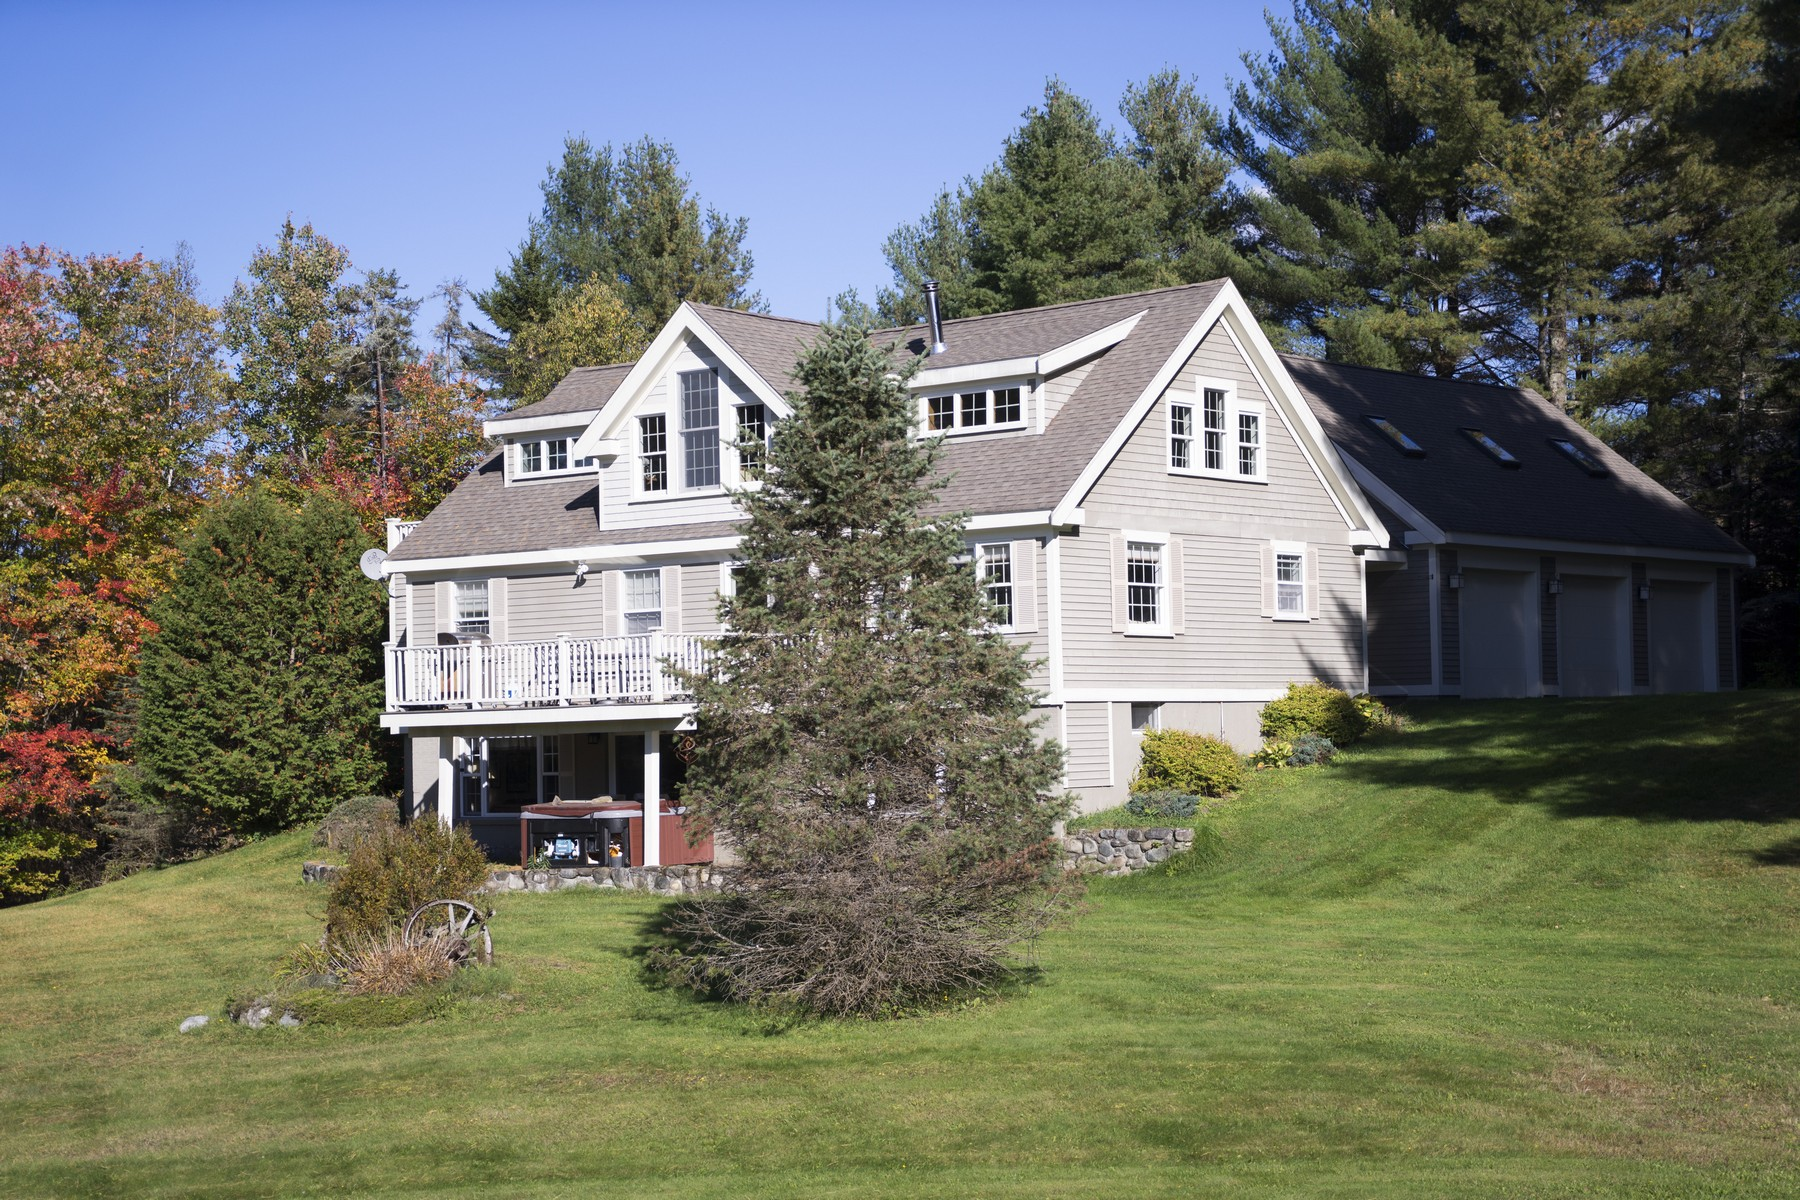 Single Family Home for Sale at 2029 Randolph Road, Morristown 2029 Randolph Rd Morristown, Vermont, 05661 United States